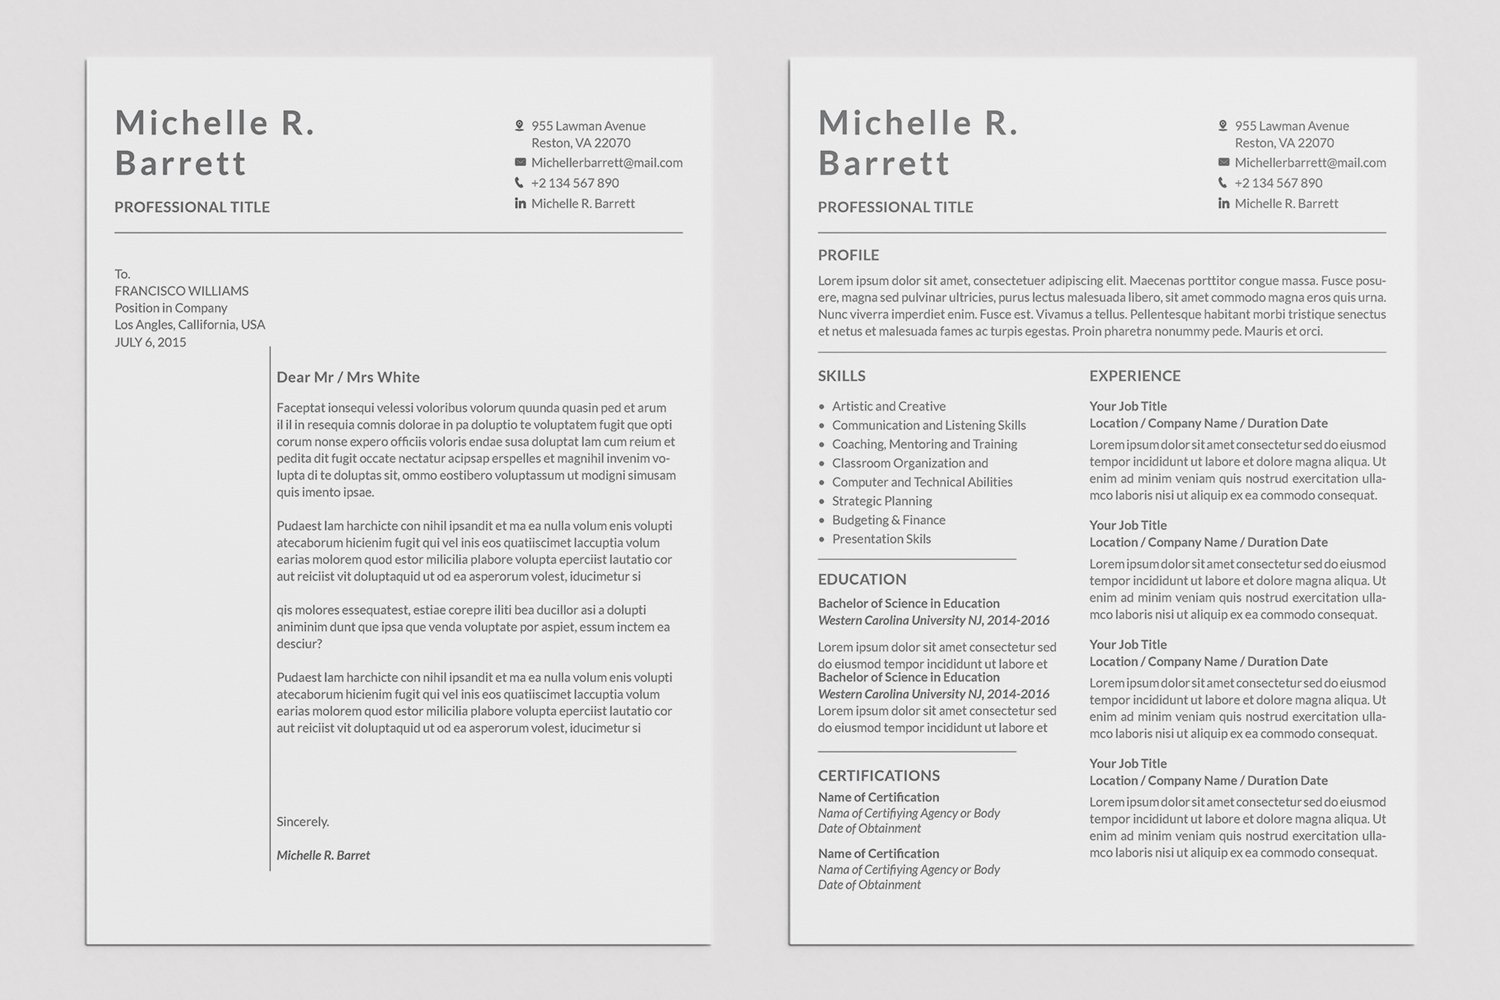 Professional Resume Templates example image 8